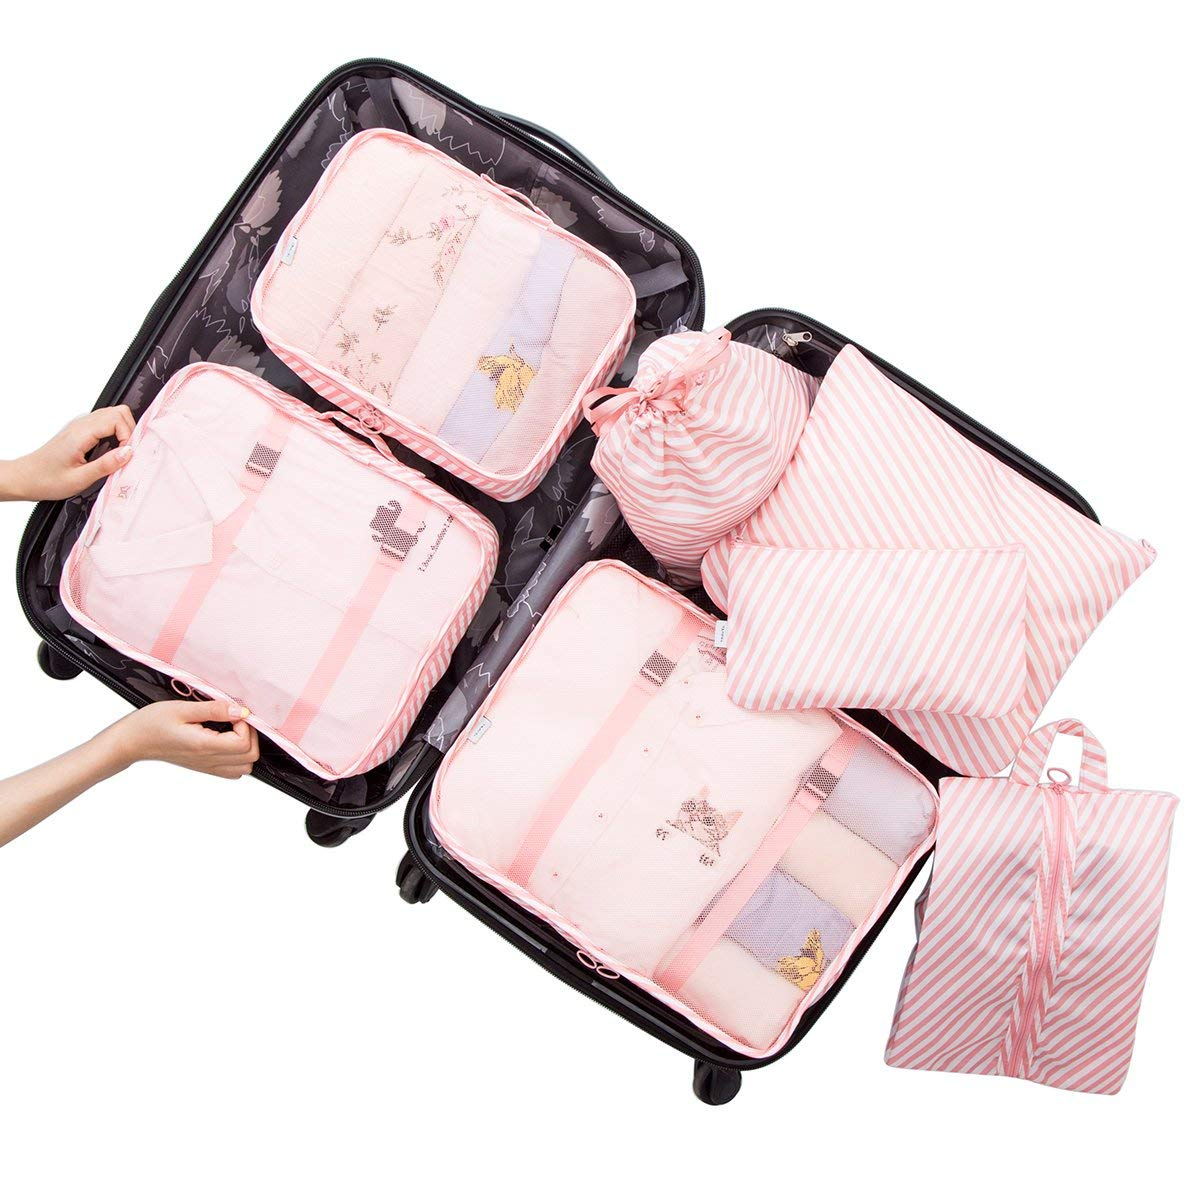 #3 Packing Cubes - How many times do I have to tell you to buy these?!?